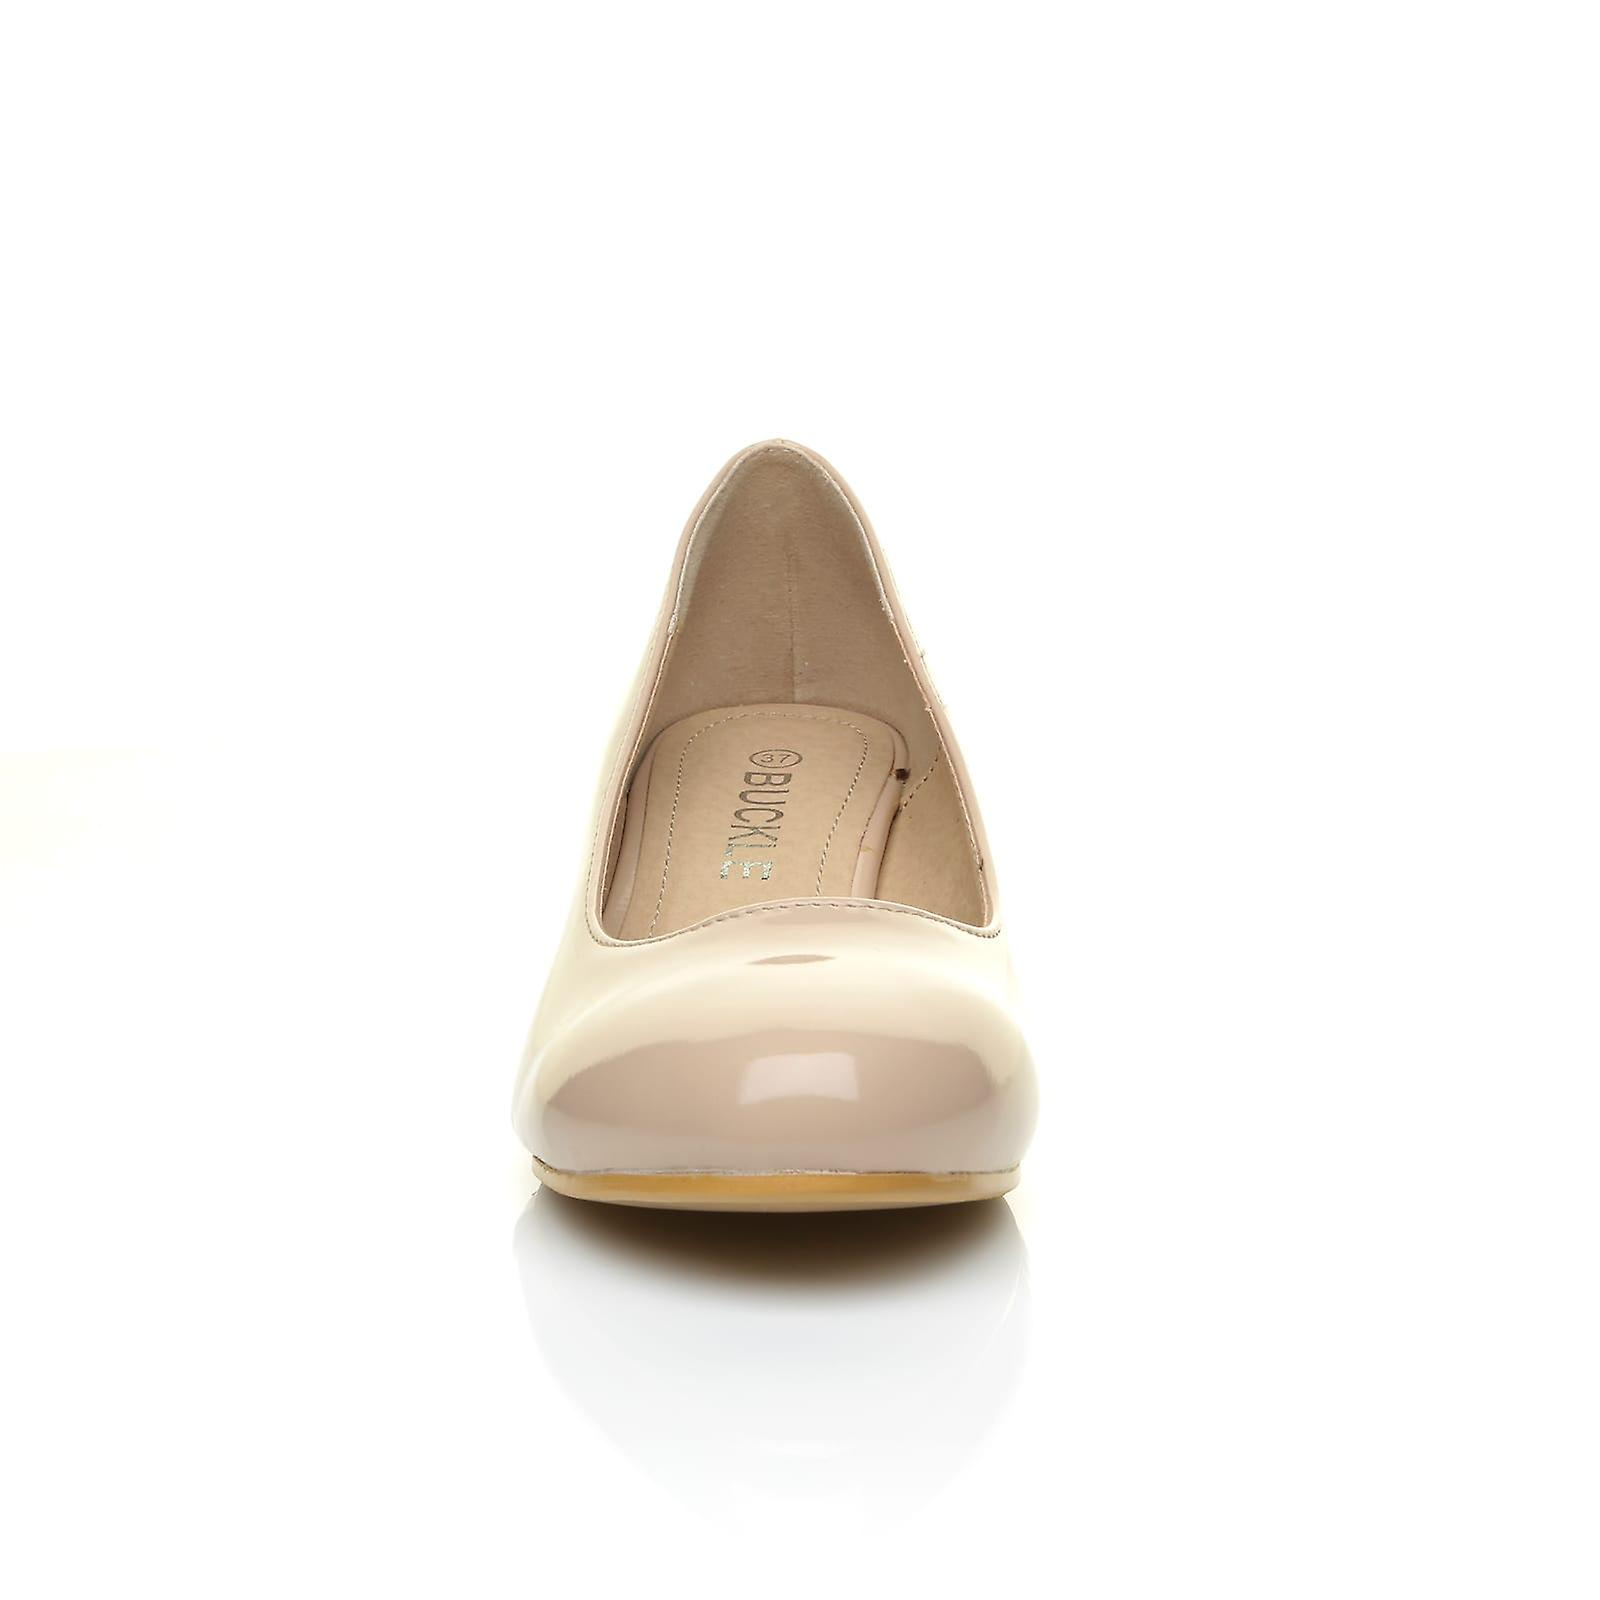 CHARM Nude Patent PU Leather Leather Leather Low Heel Round Toe Comfort Court Shoes d74f78